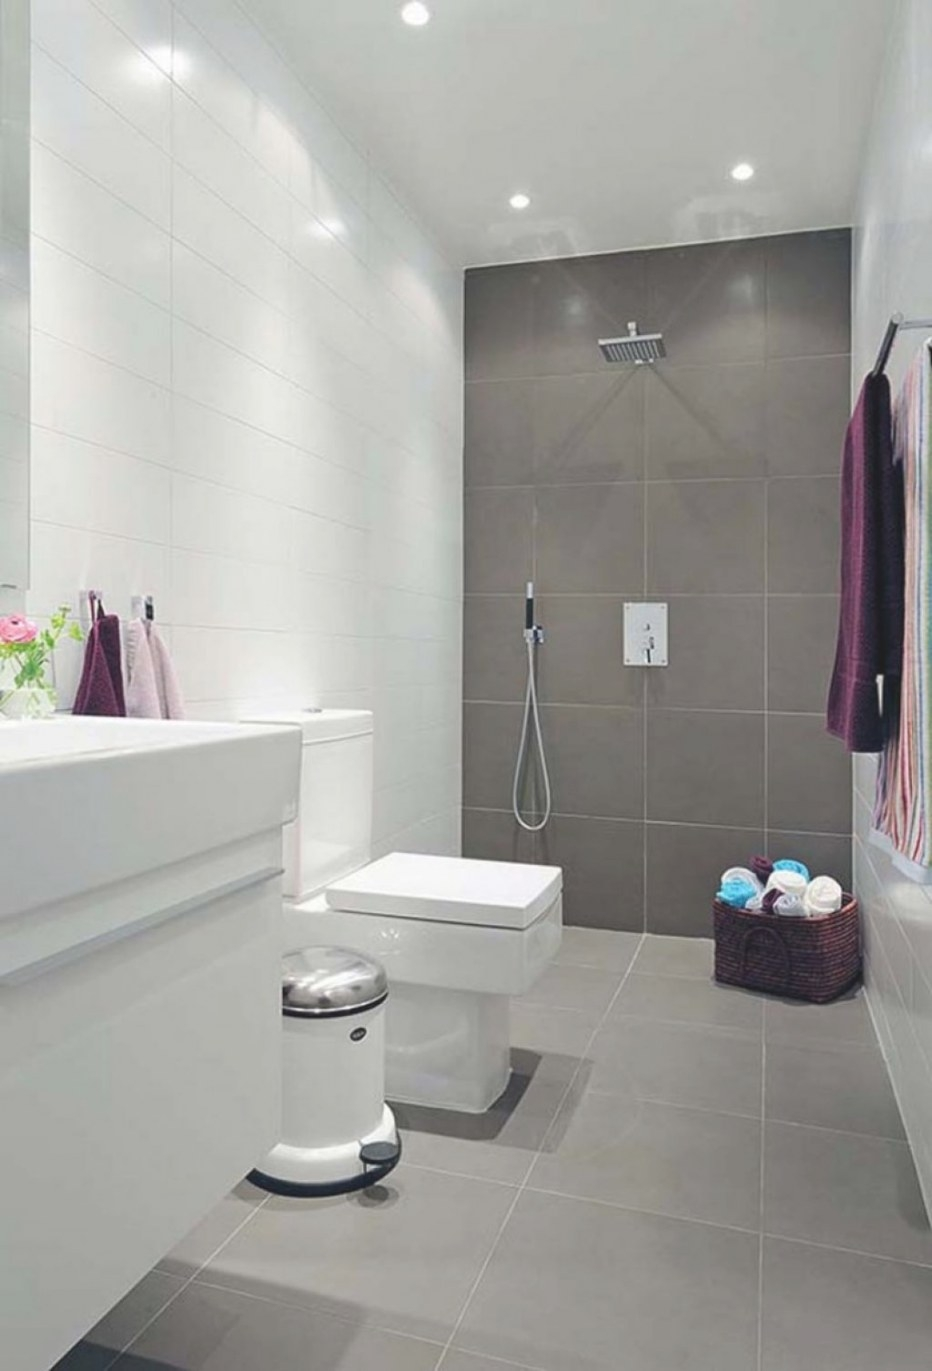 Modern Bathroom With Same Tile On Floor And Wall; Main for What Size Tiles For Small Bathroom